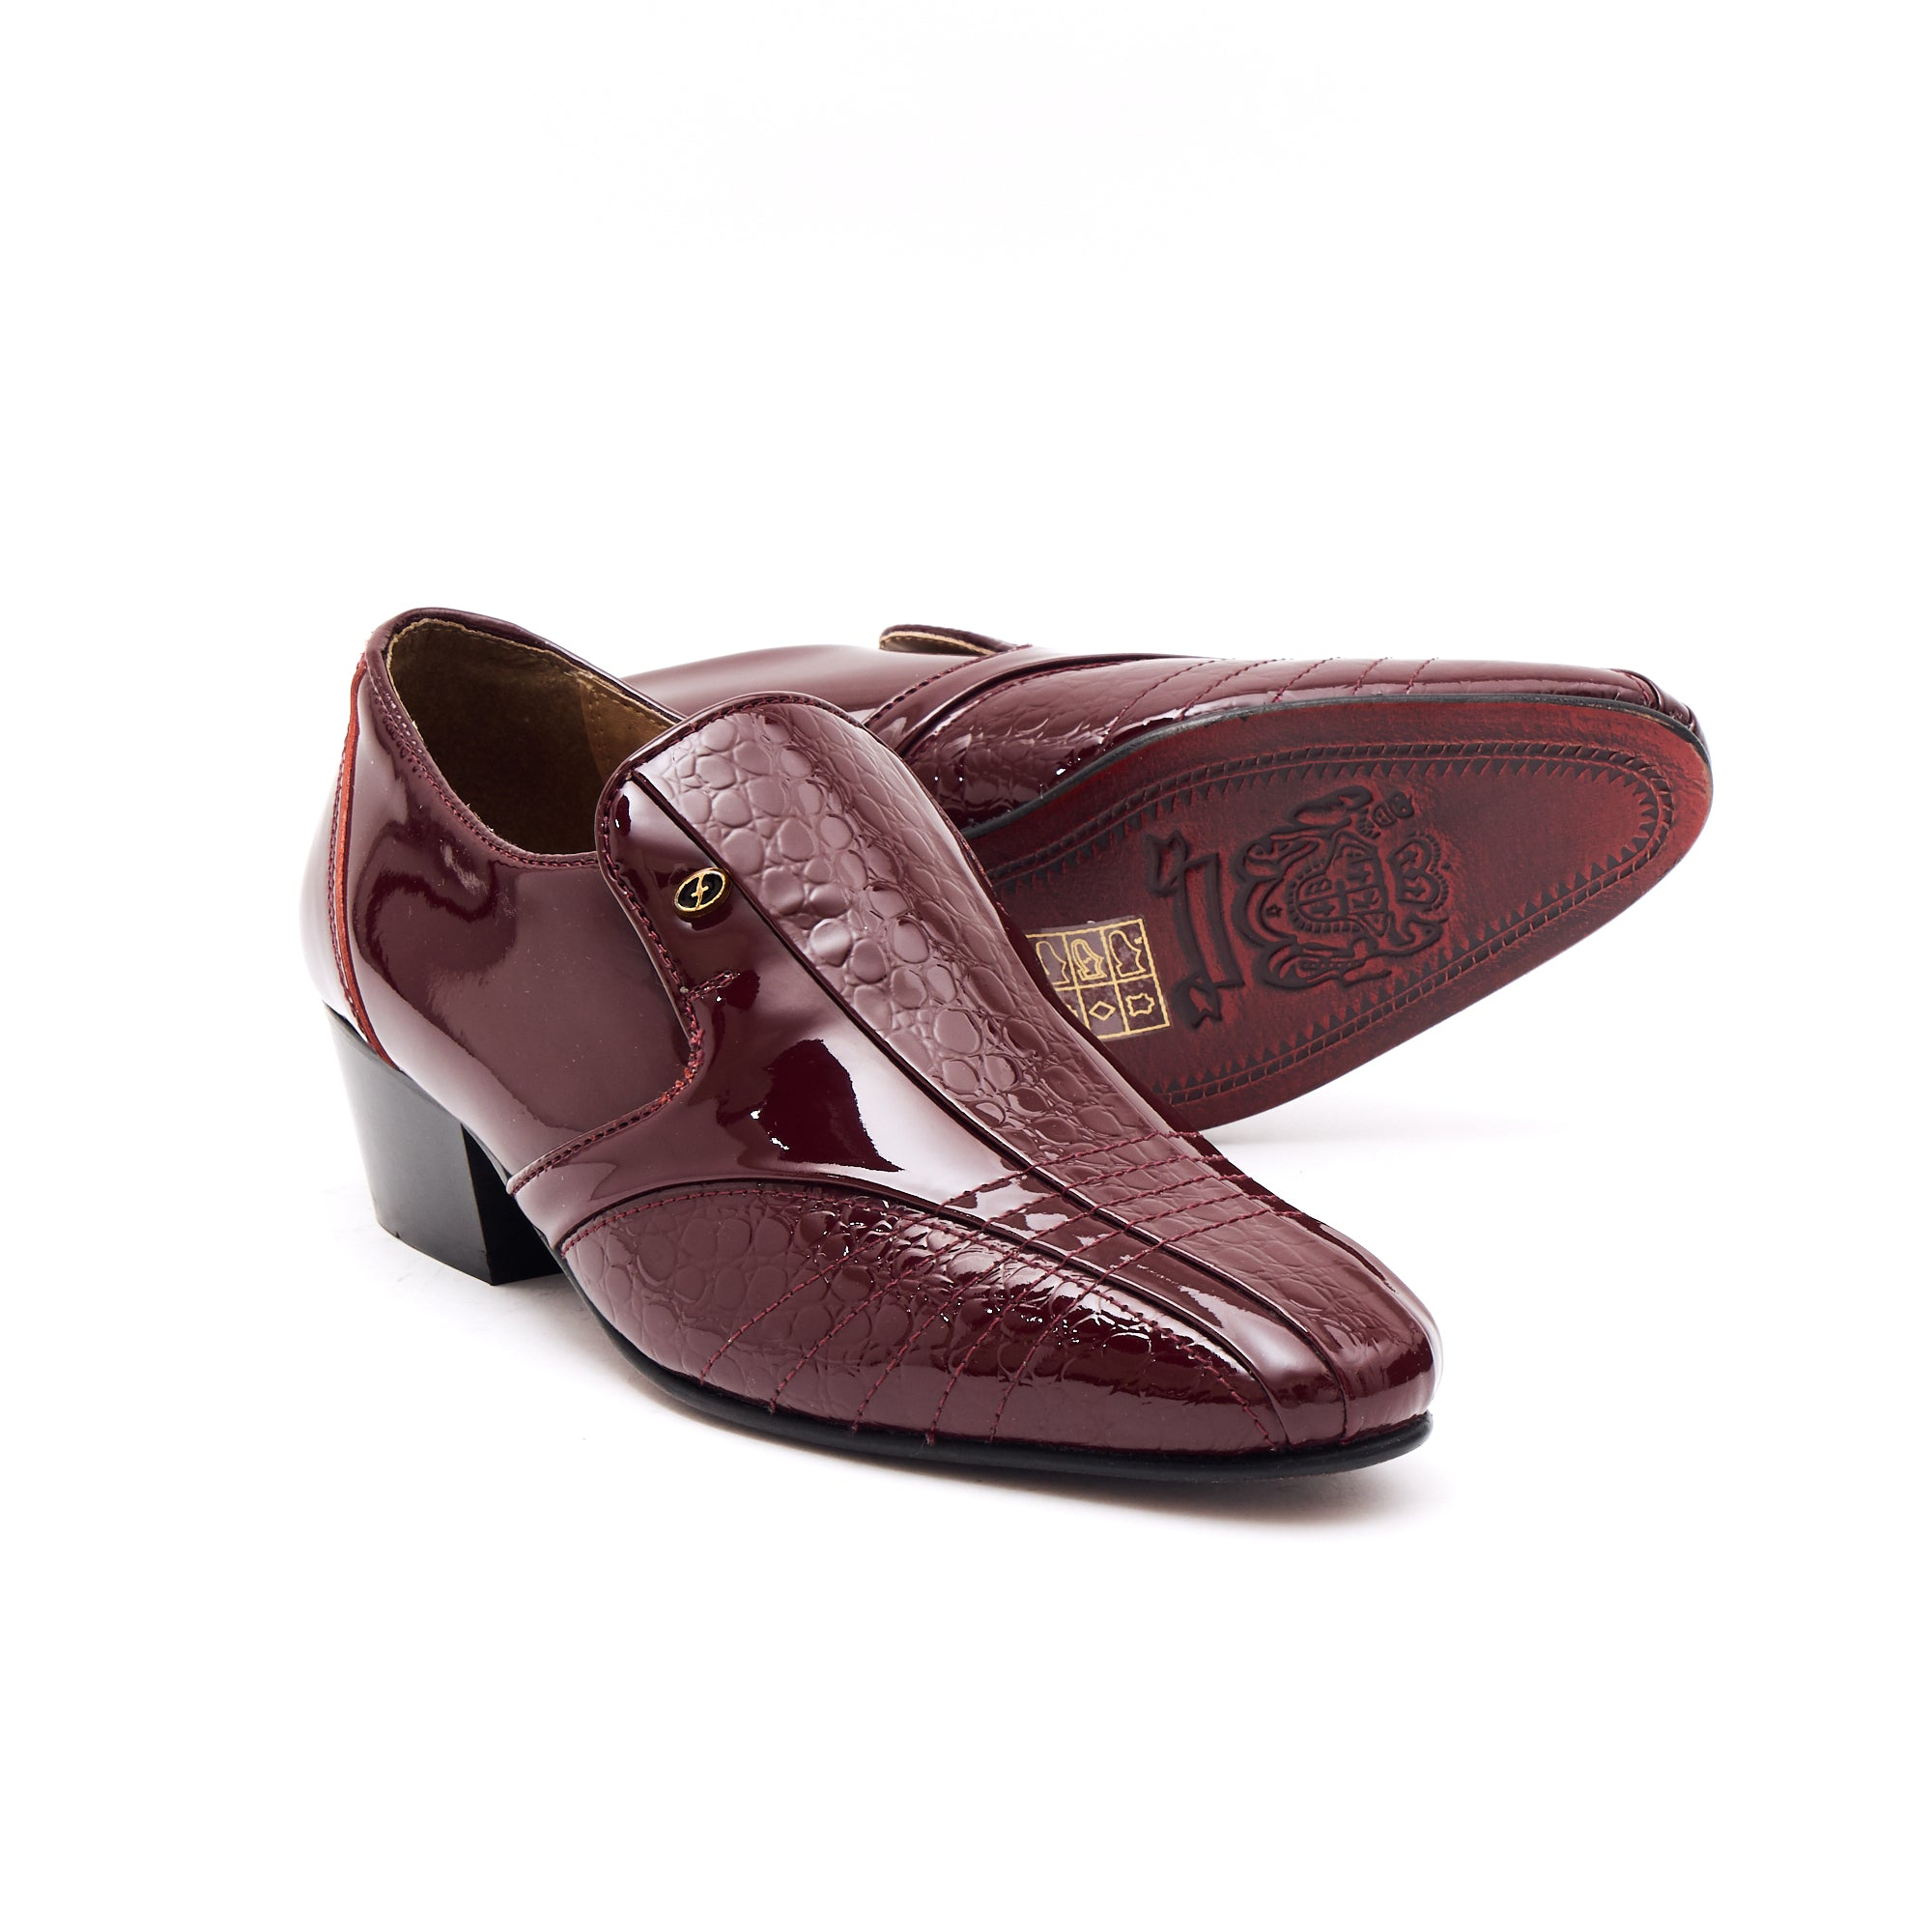 Mens Leather Cuban Heel Patent Shoes-33477 Burgundy